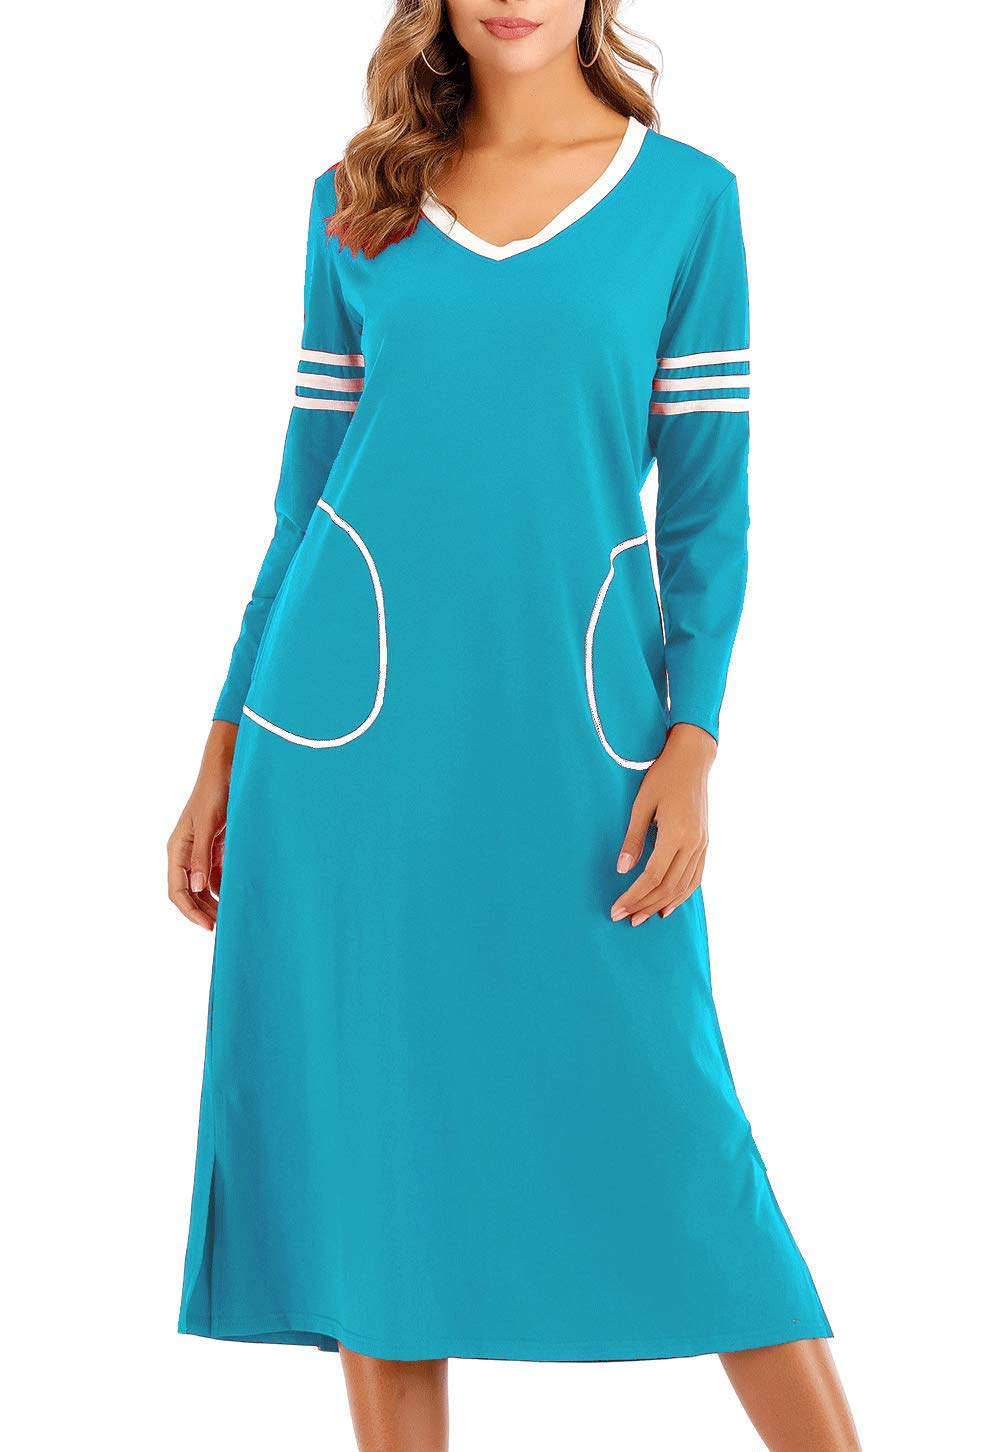 AOVXO Long Nightgown Womens V Neck Long Sleeve Nightshirt Ultra-Soft Cotton Fabric Split Hem Design with 2 Side Deep Pockets (Lake Blue, S)